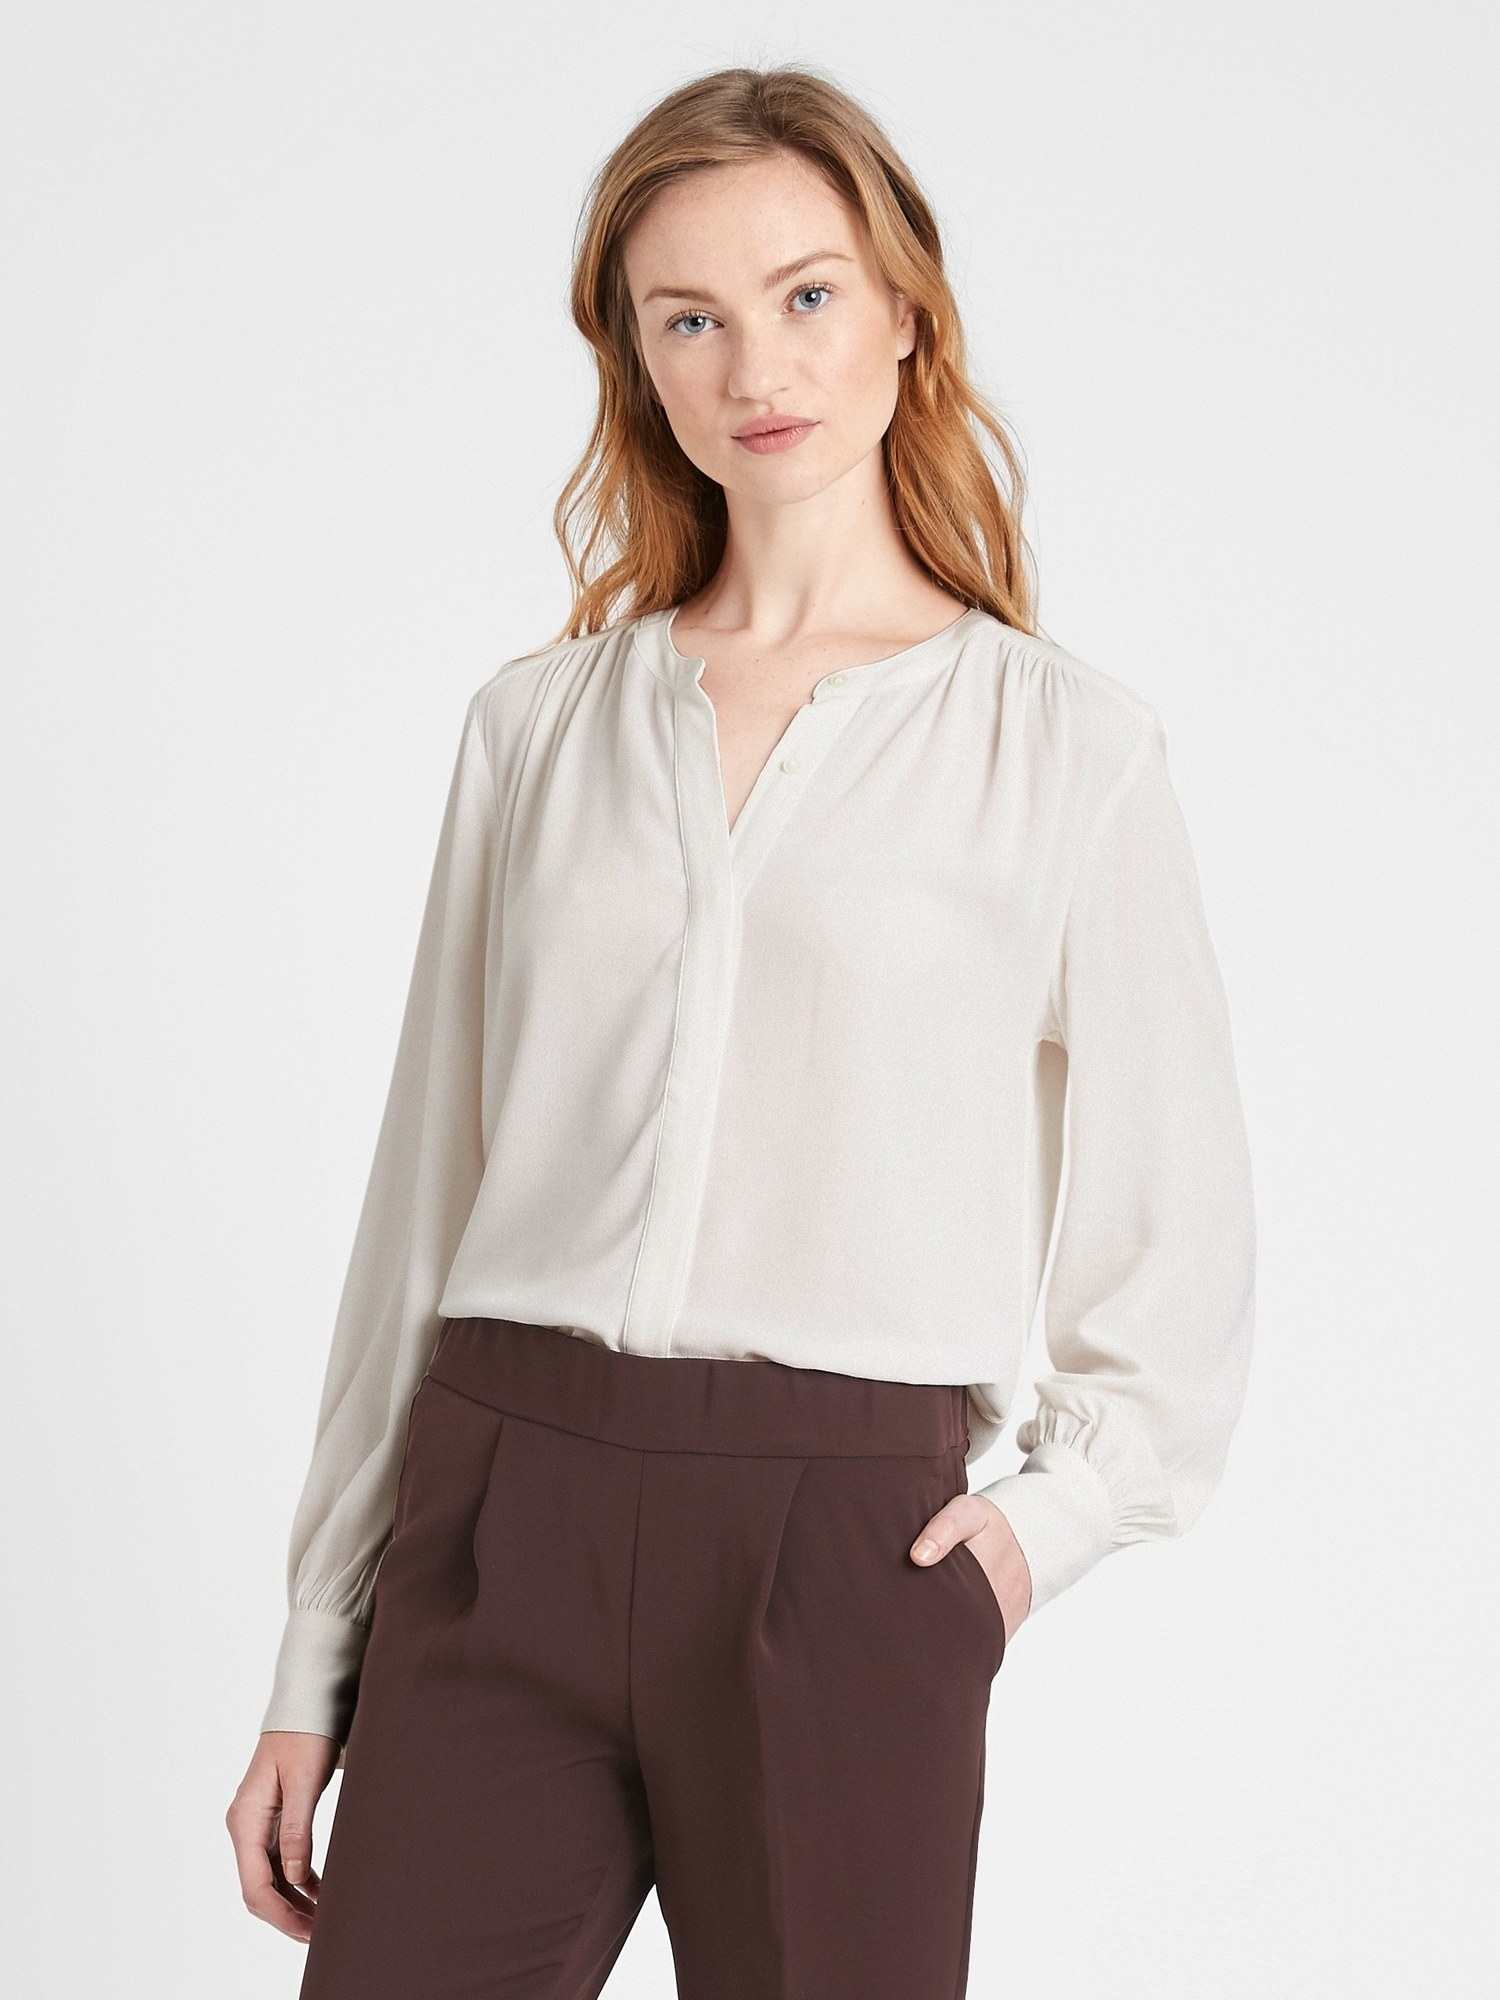 Model wearing the blouse in white